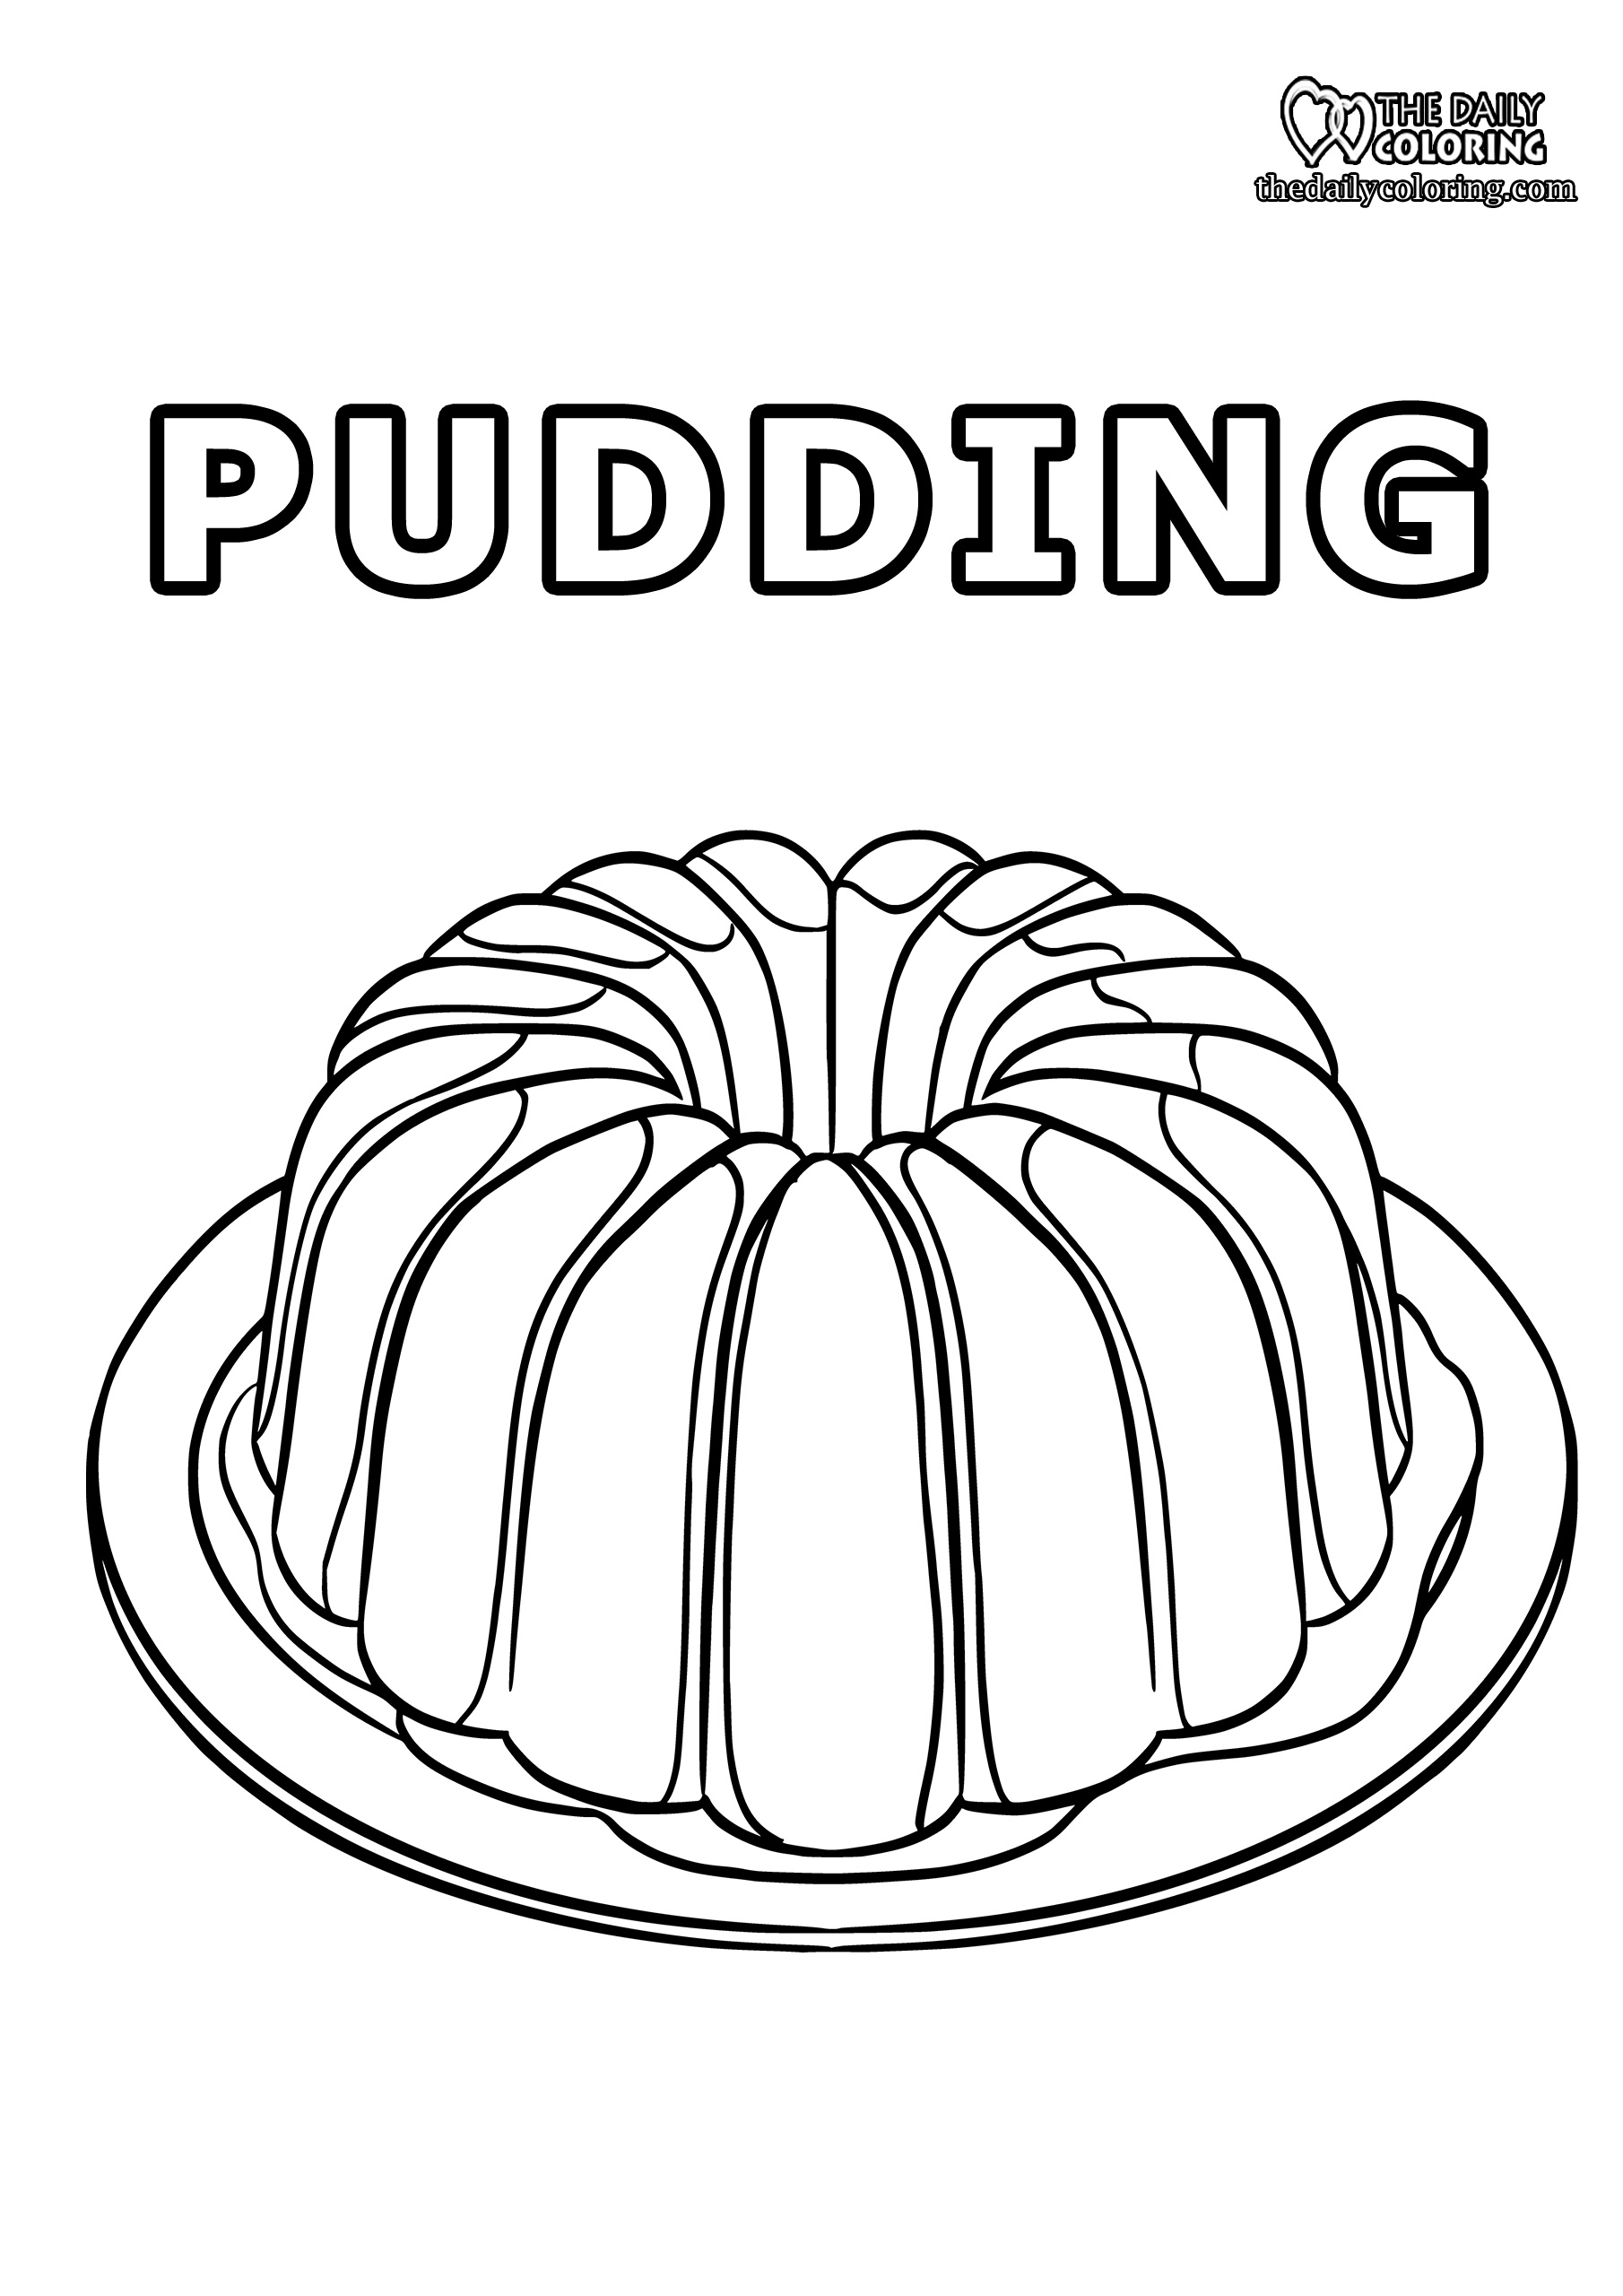 pudding-coloring-page